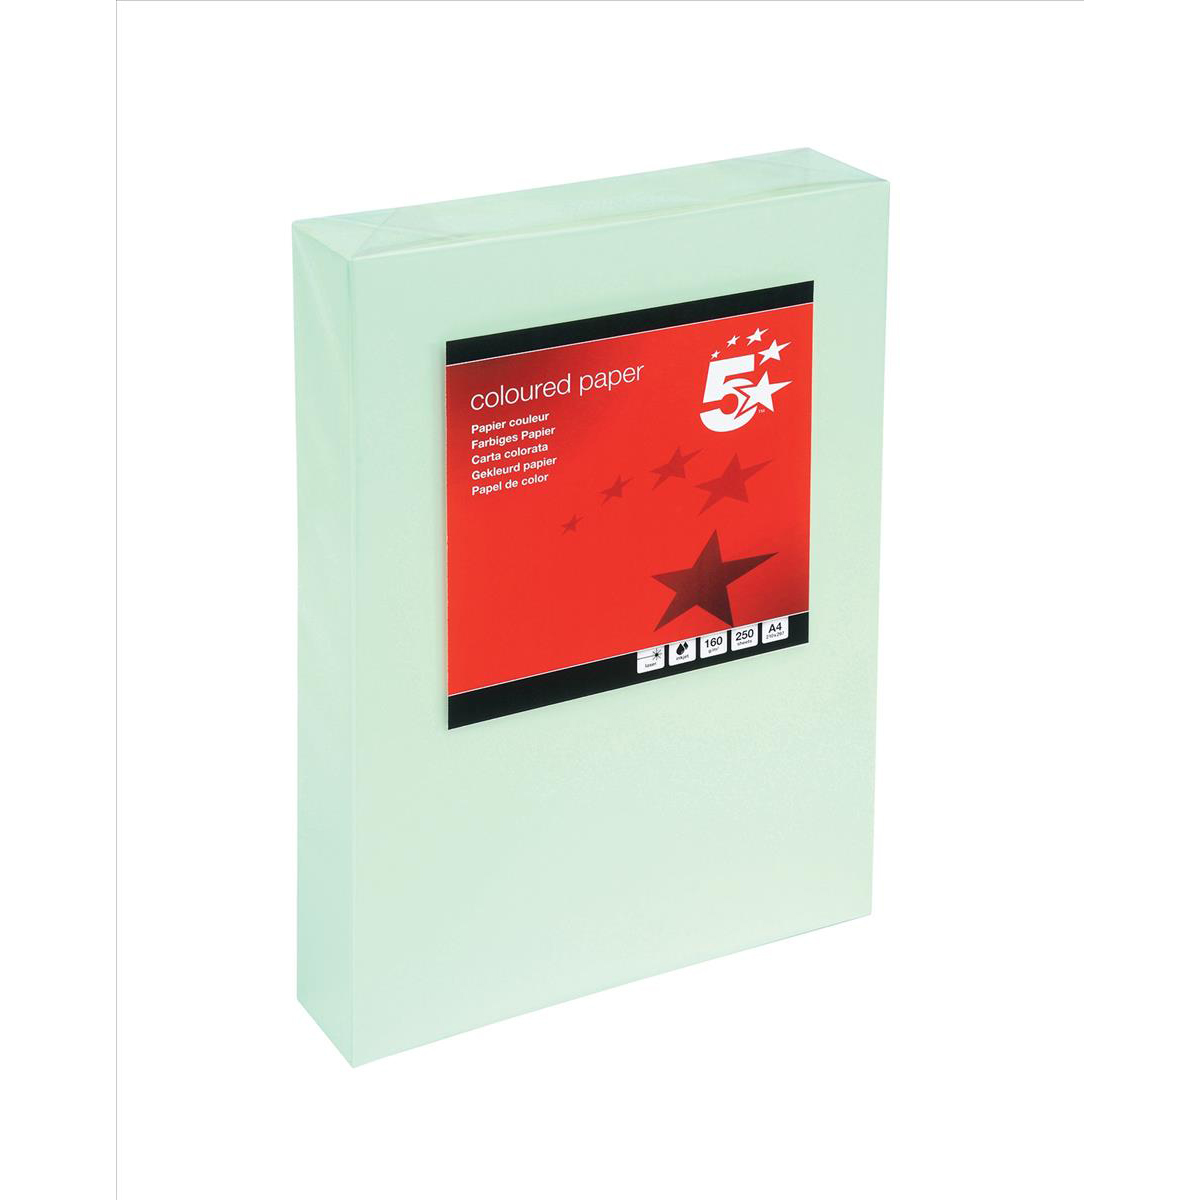 Card (160g+) 5 Star Office Coloured Card Multifunctional 160gsm A4 Light Green 250 Sheets